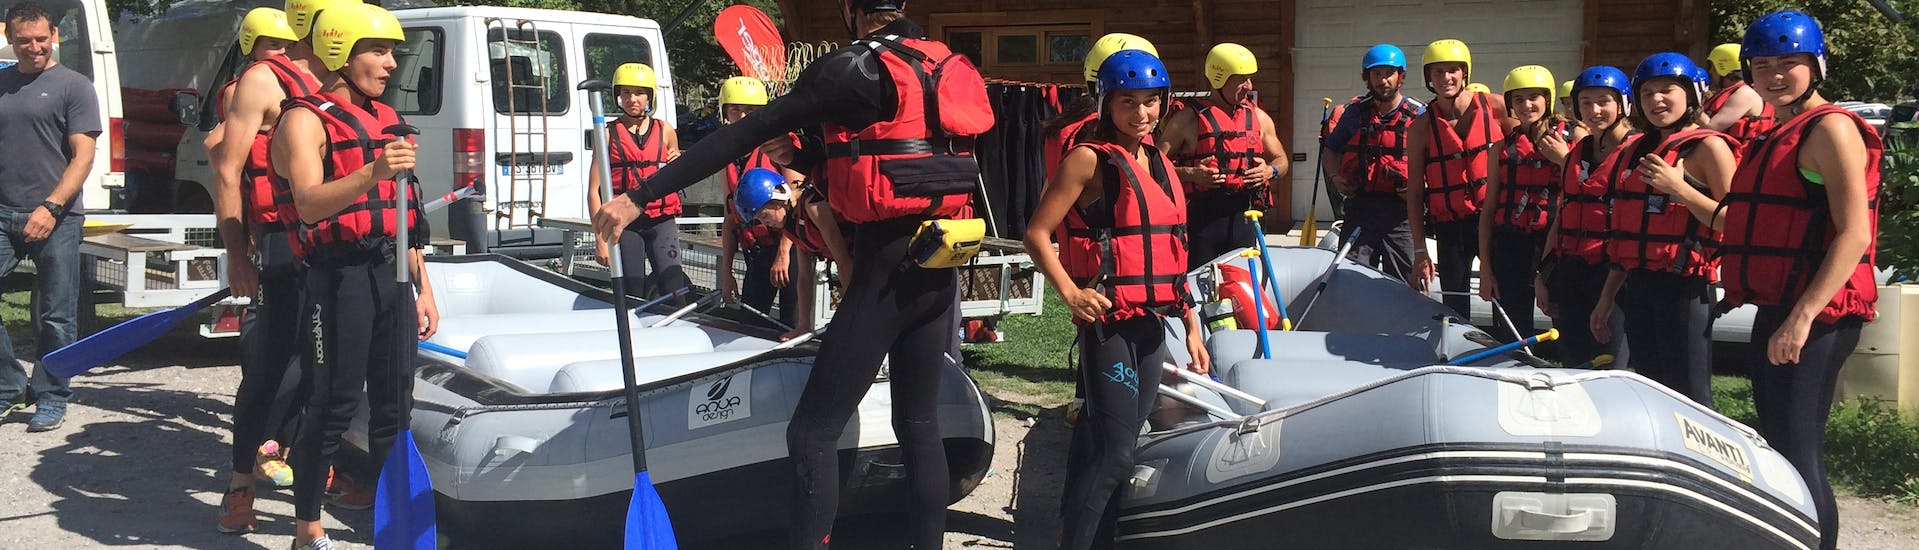 A group is waiting for their Rafting activity with Ecrins Eaux Vives.